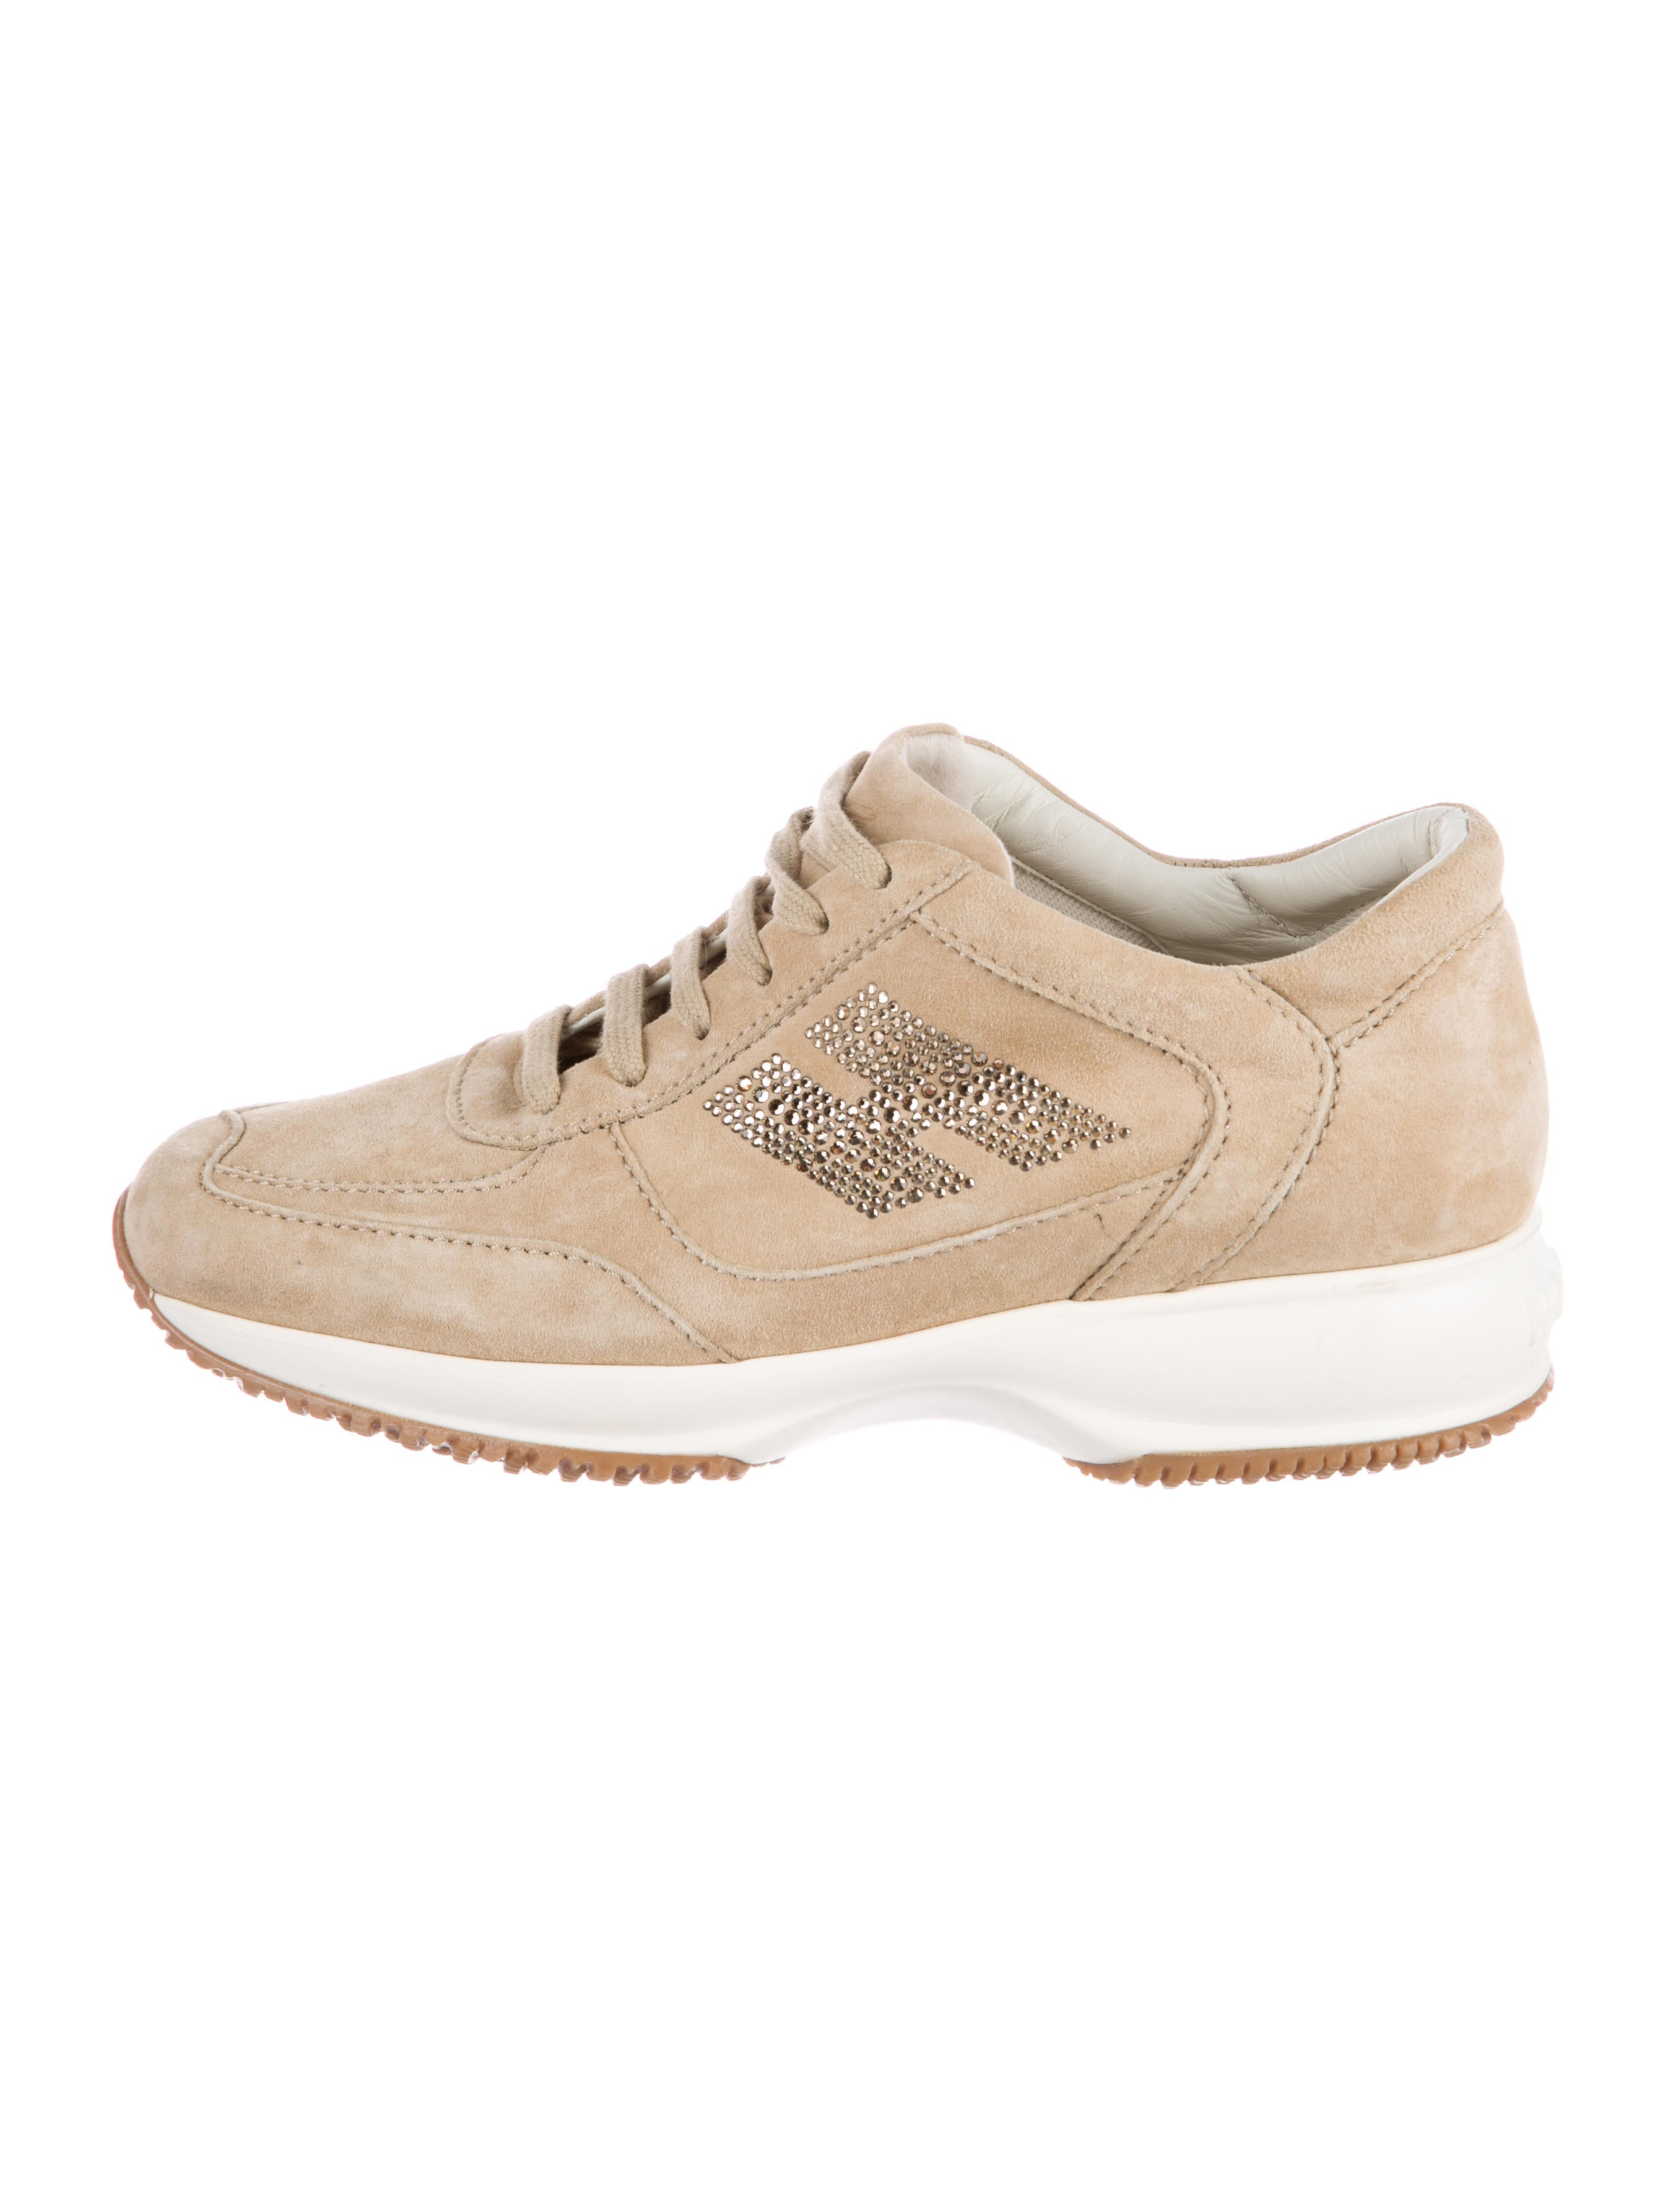 Hogan Suede Embellished Sneakers discount low shipping fee outlet pay with visa OylPr